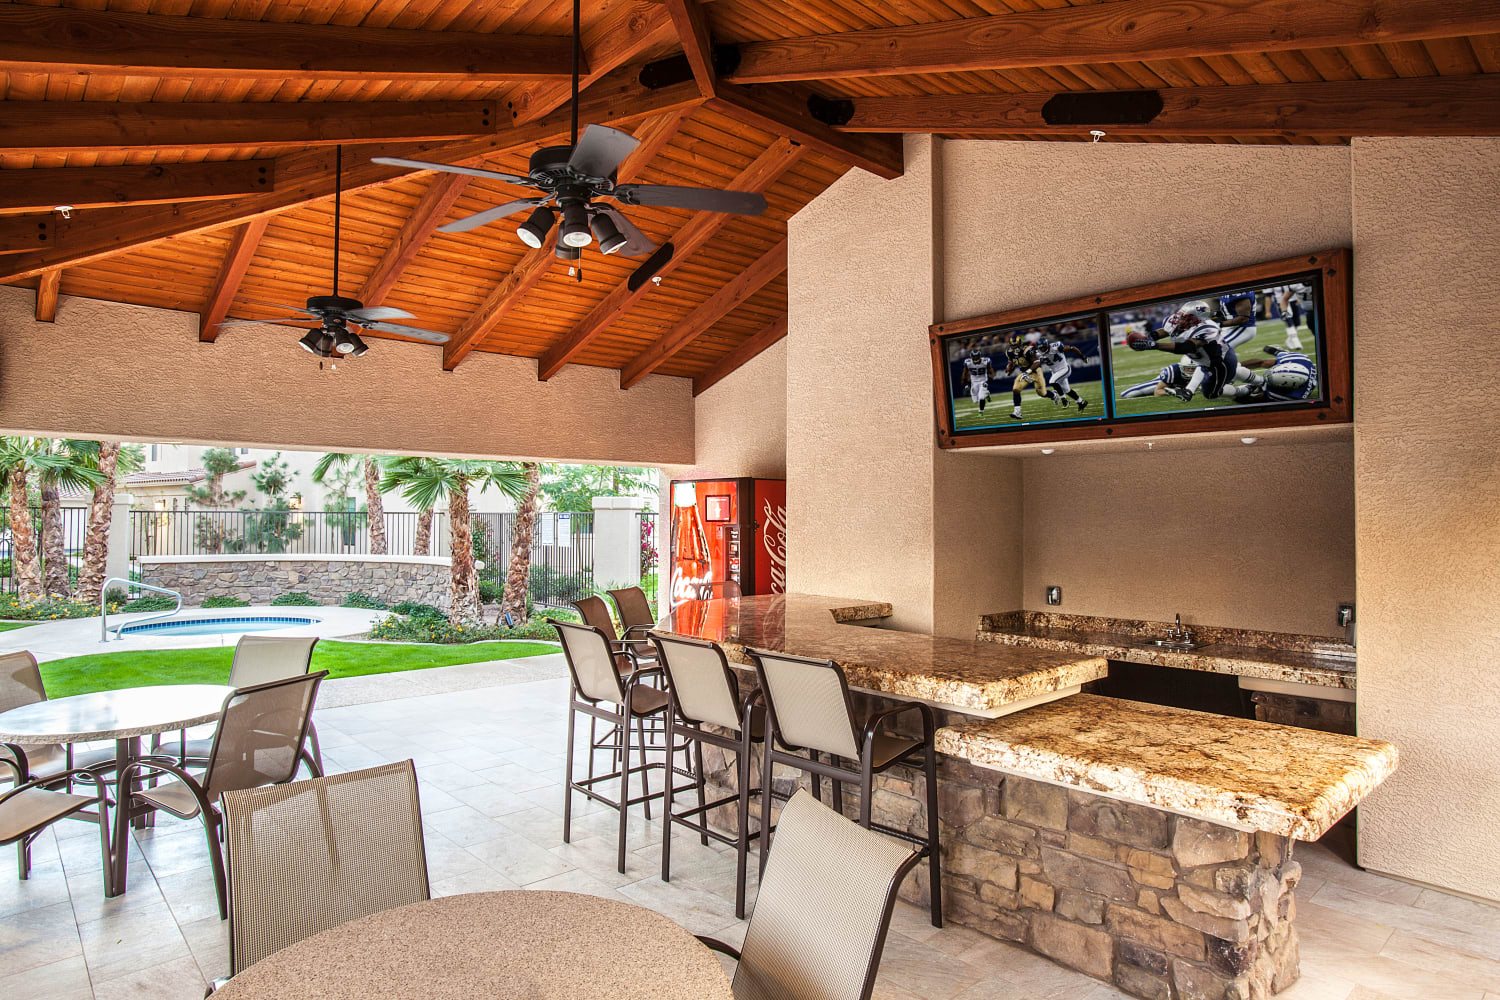 Poolside clubhouse with televisions and kitchen for entertaining at San Marquis in Tempe, Arizona